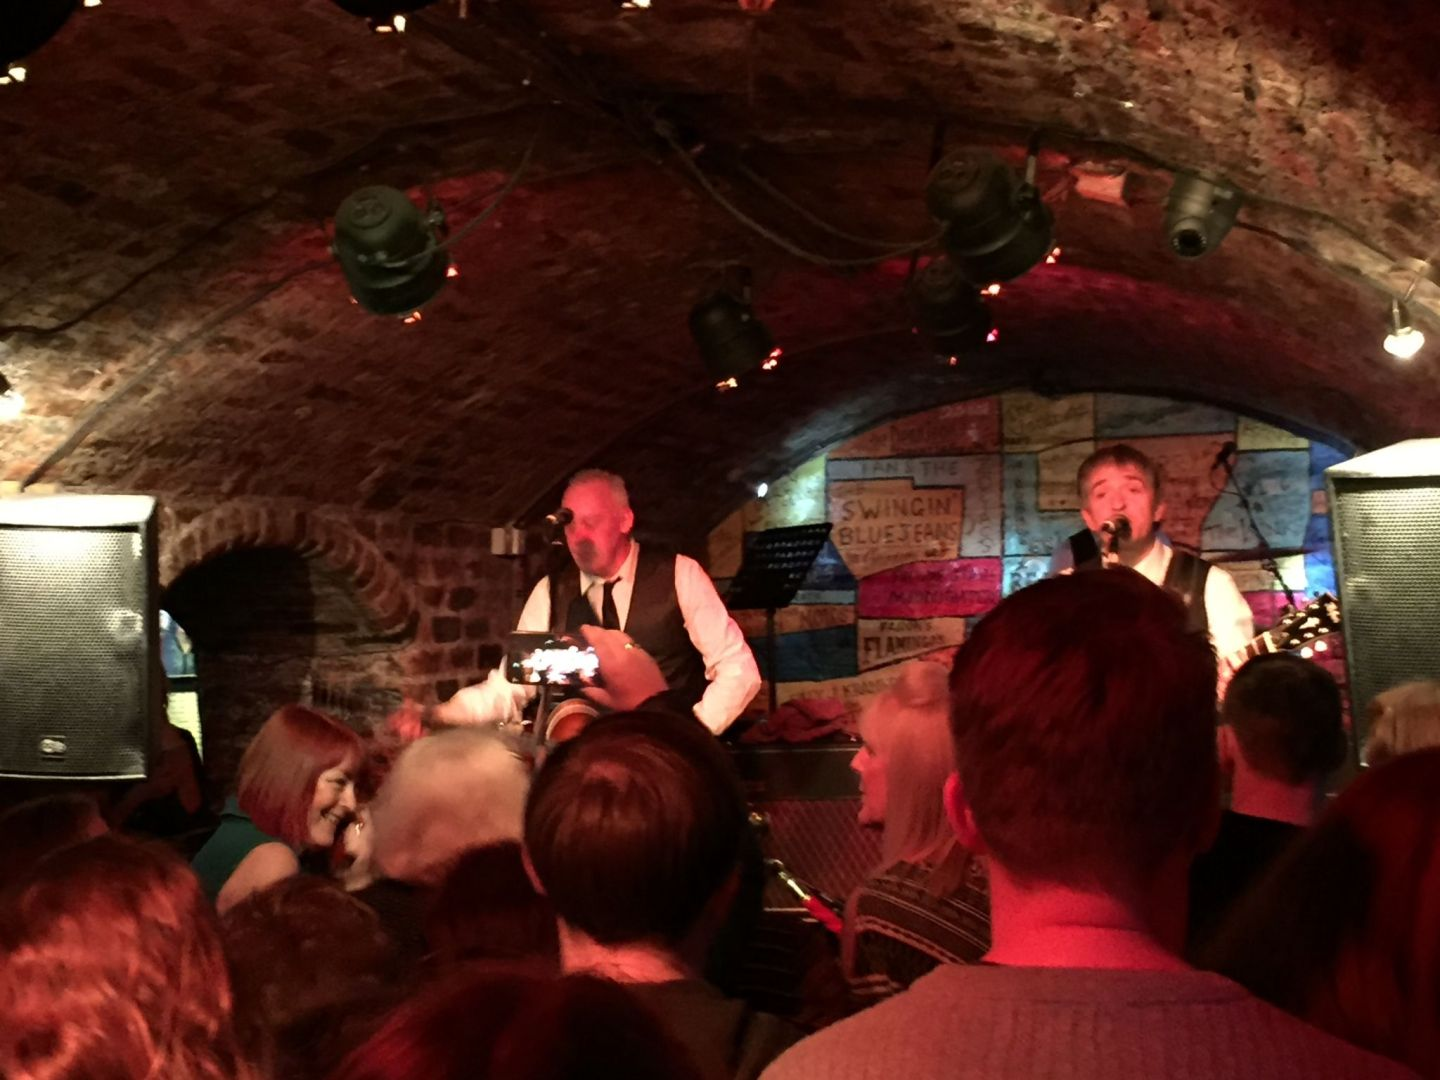 Liverpool Beat, band at the Cavern Club Liverpool